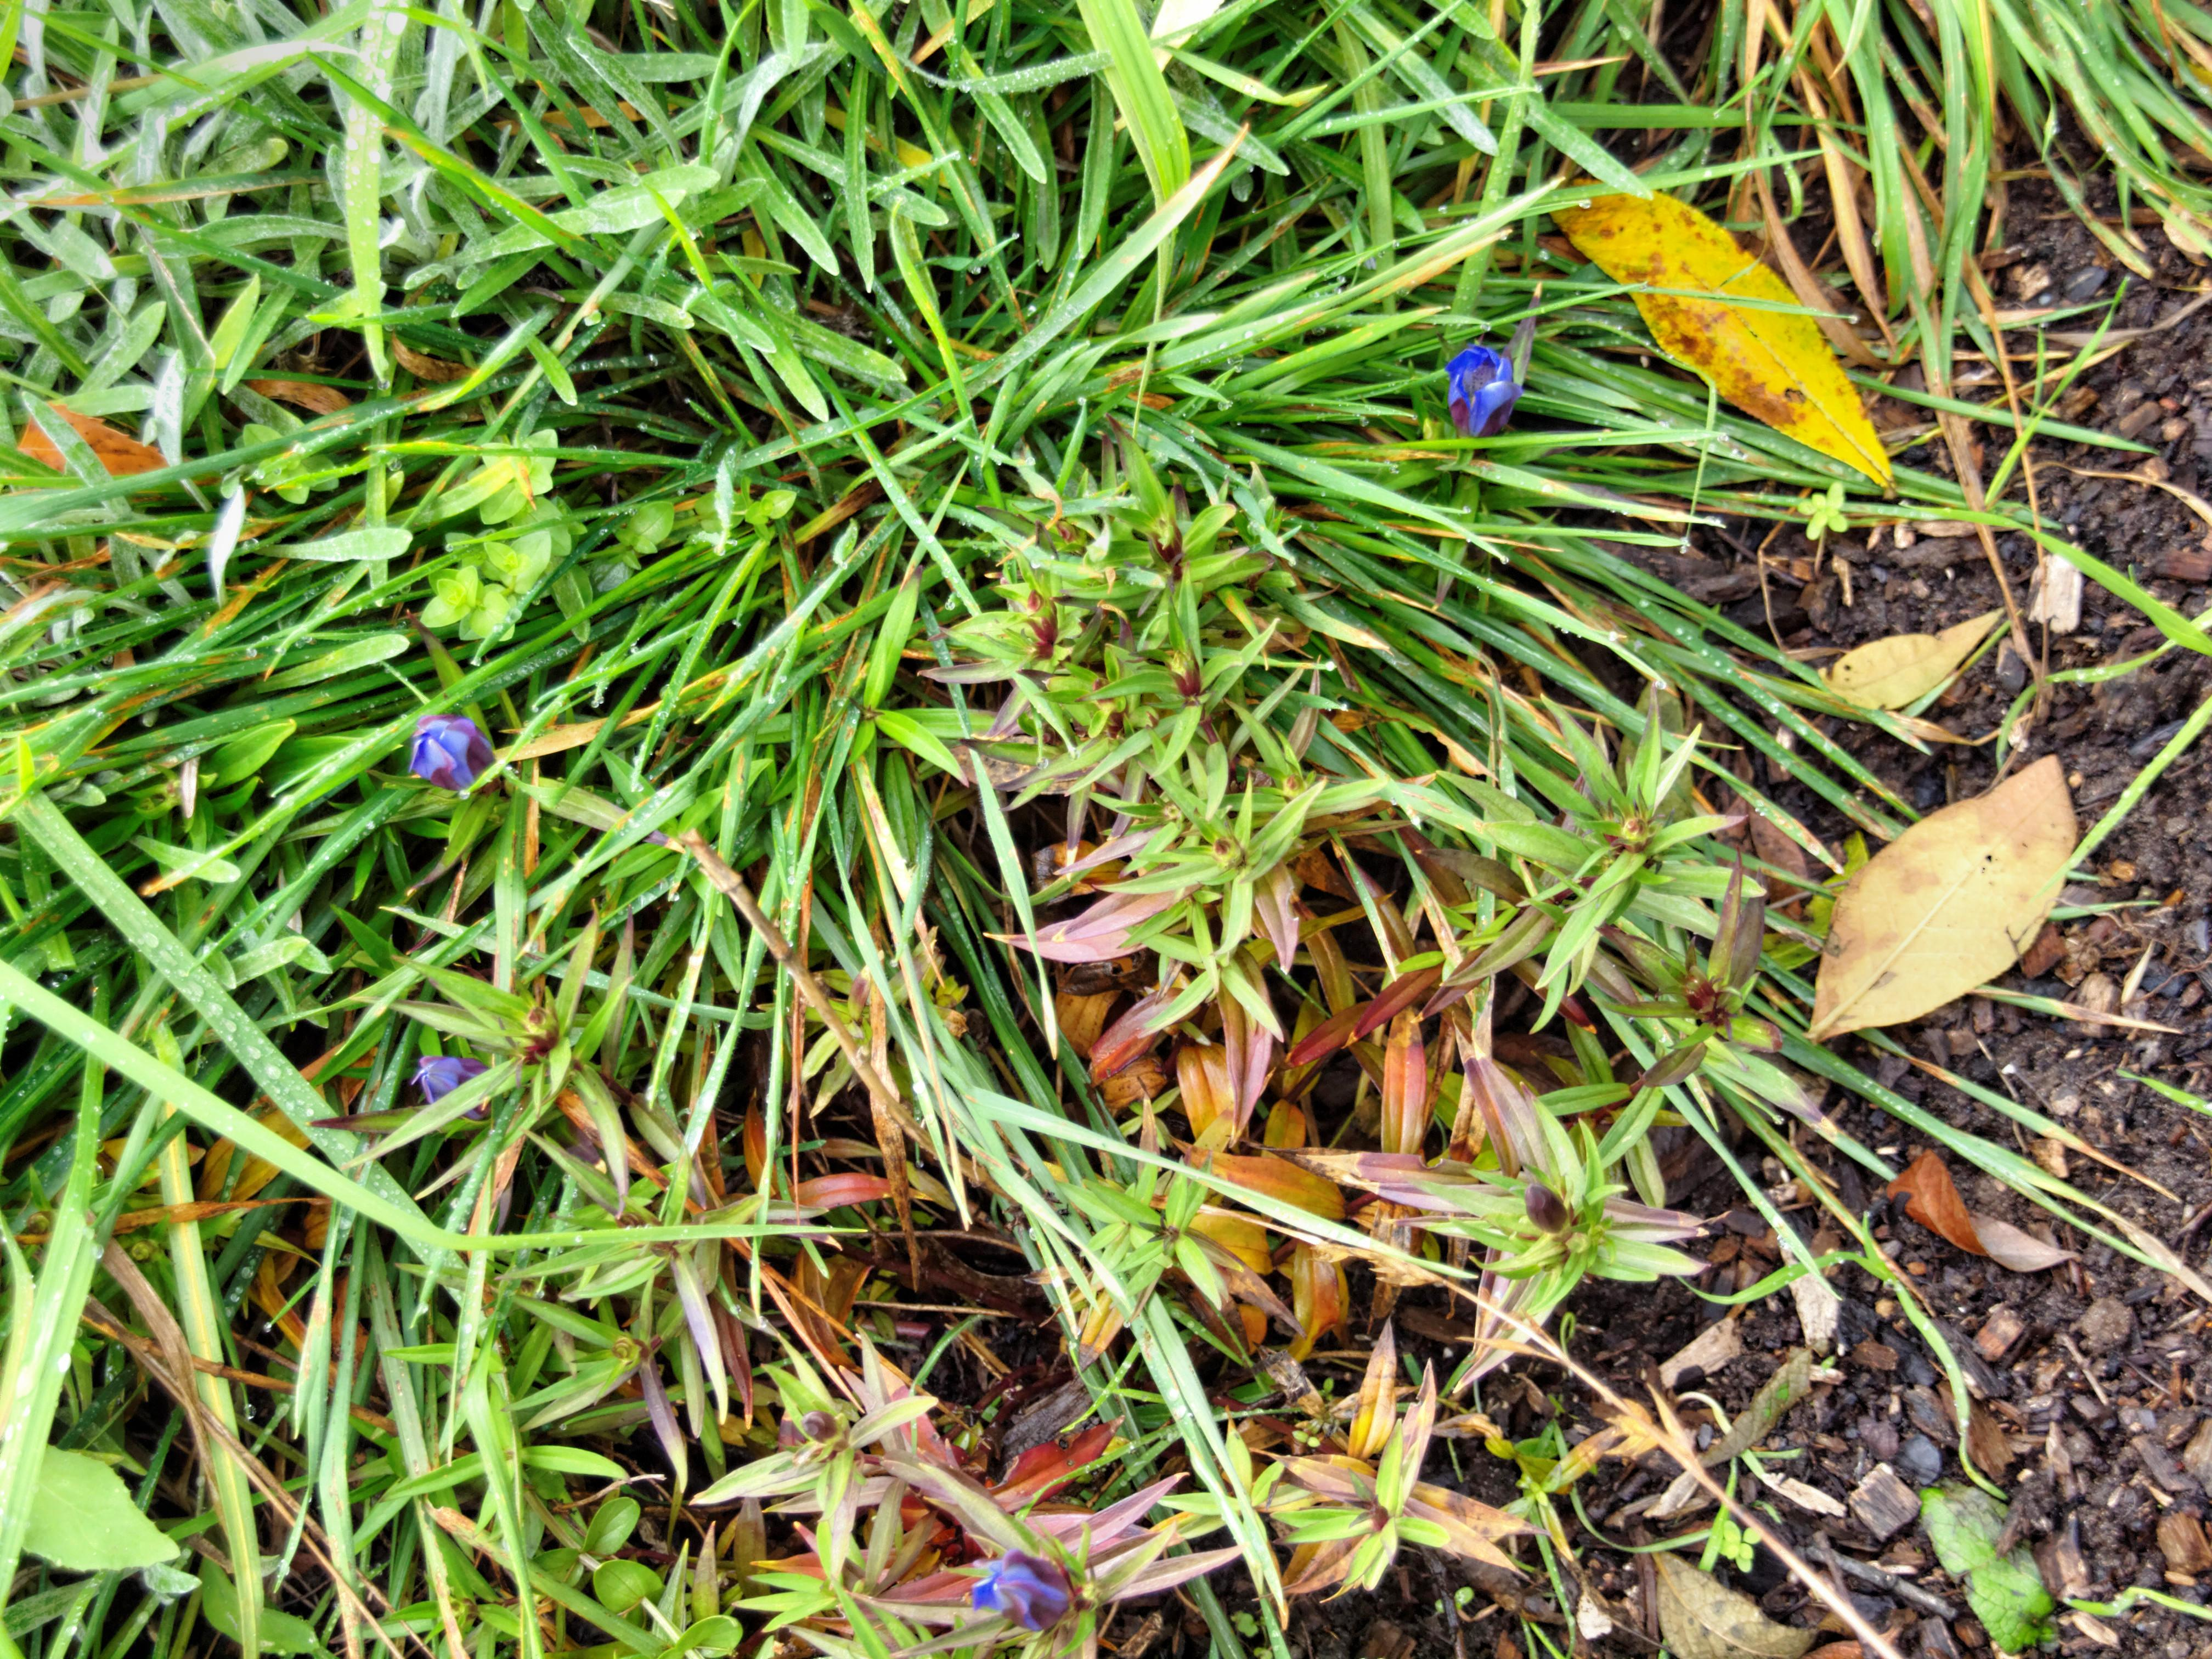 This should be Gentian.jpeg.  Is it missing?